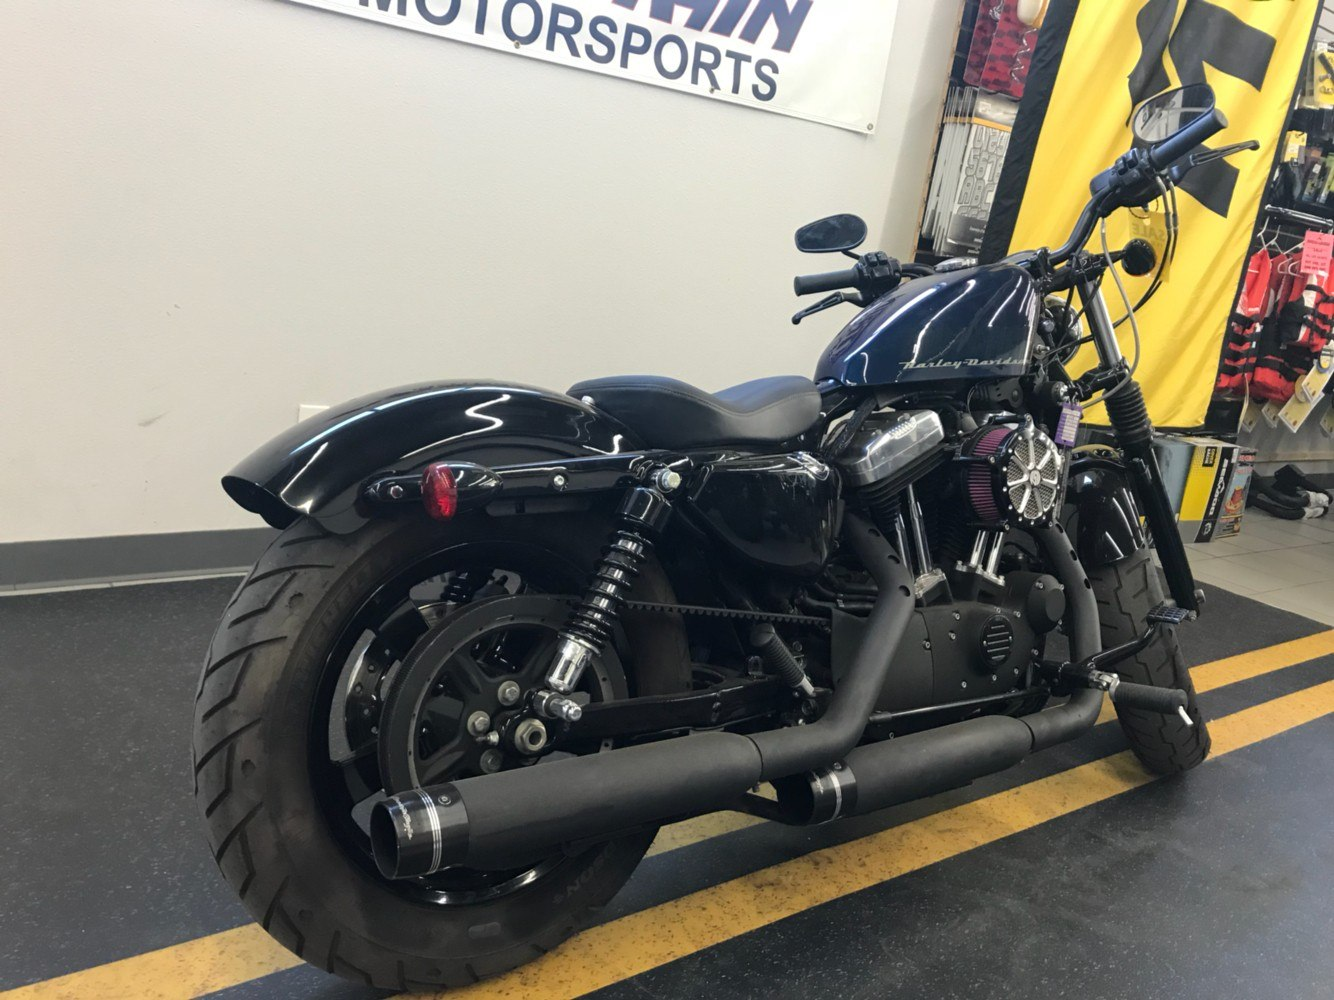 2014 Harley-Davidson XL1200X in Ontario, California - Photo 4